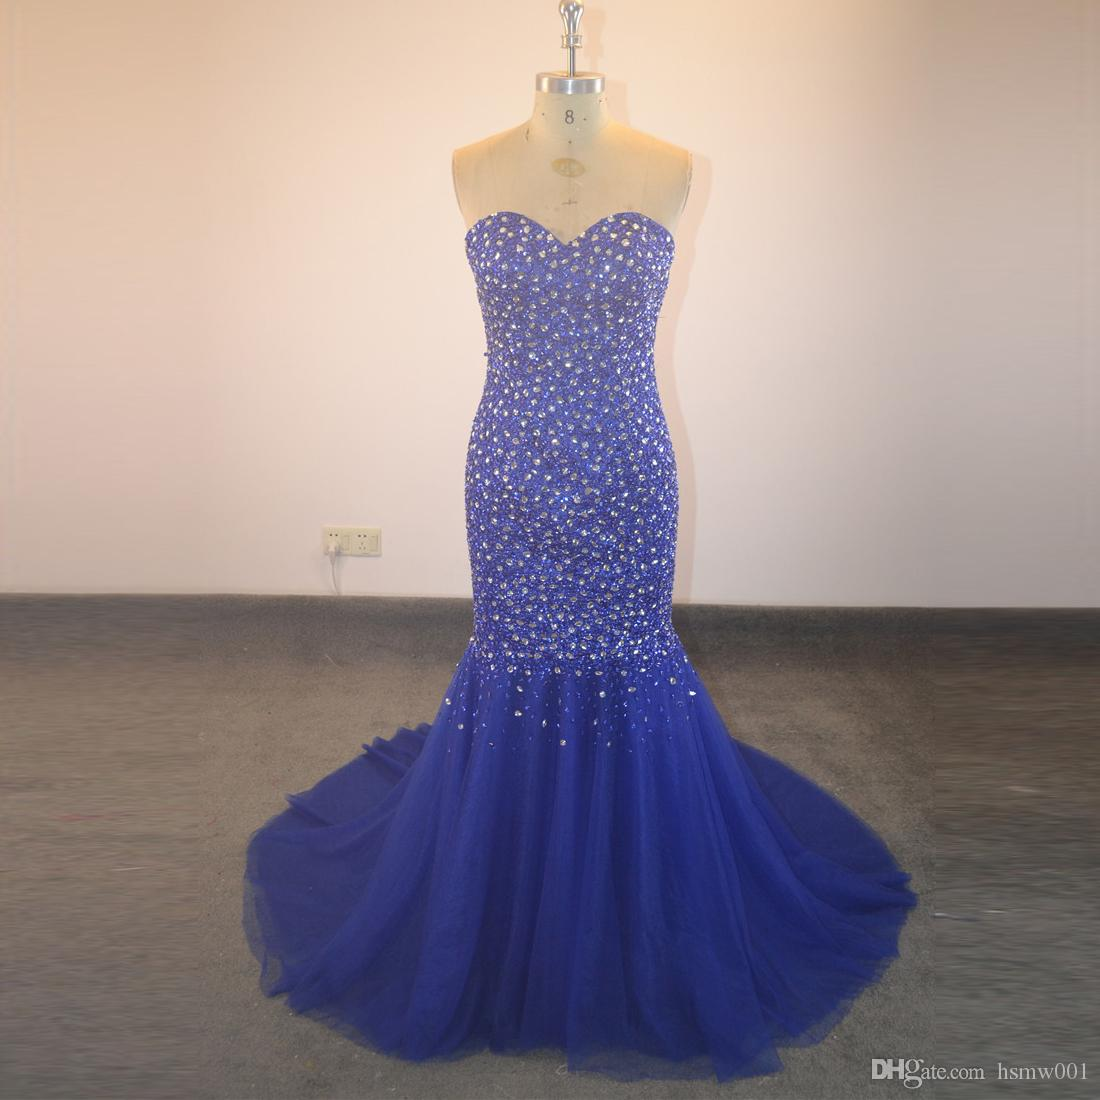 Luxury Mermaid Tulle Beading Crystal Sweetheart Royal Blue Formal Evening Gown Long Evening dress Prom dress new style